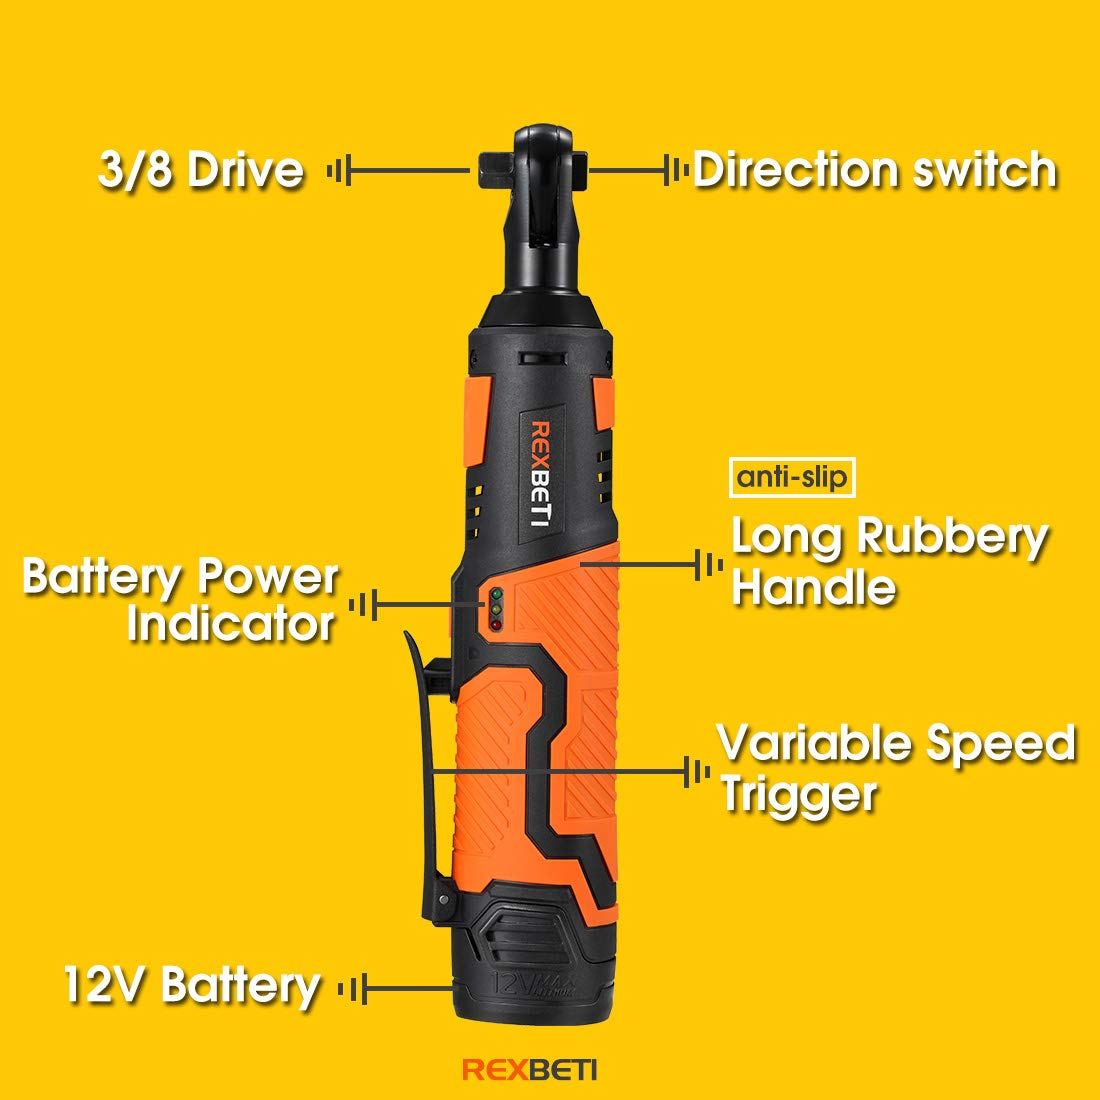 REXBETI Cordless 3/8'' Electric Ratchet Wrench Set with 12V Lithium-Ion Battery and Charger Kit, Include 7-piece 3/8'' Metric Sockets and 1-piece 1/4'' Socket Adapter, 45Nm of Maximum Torque by REXBETI (Image #5)